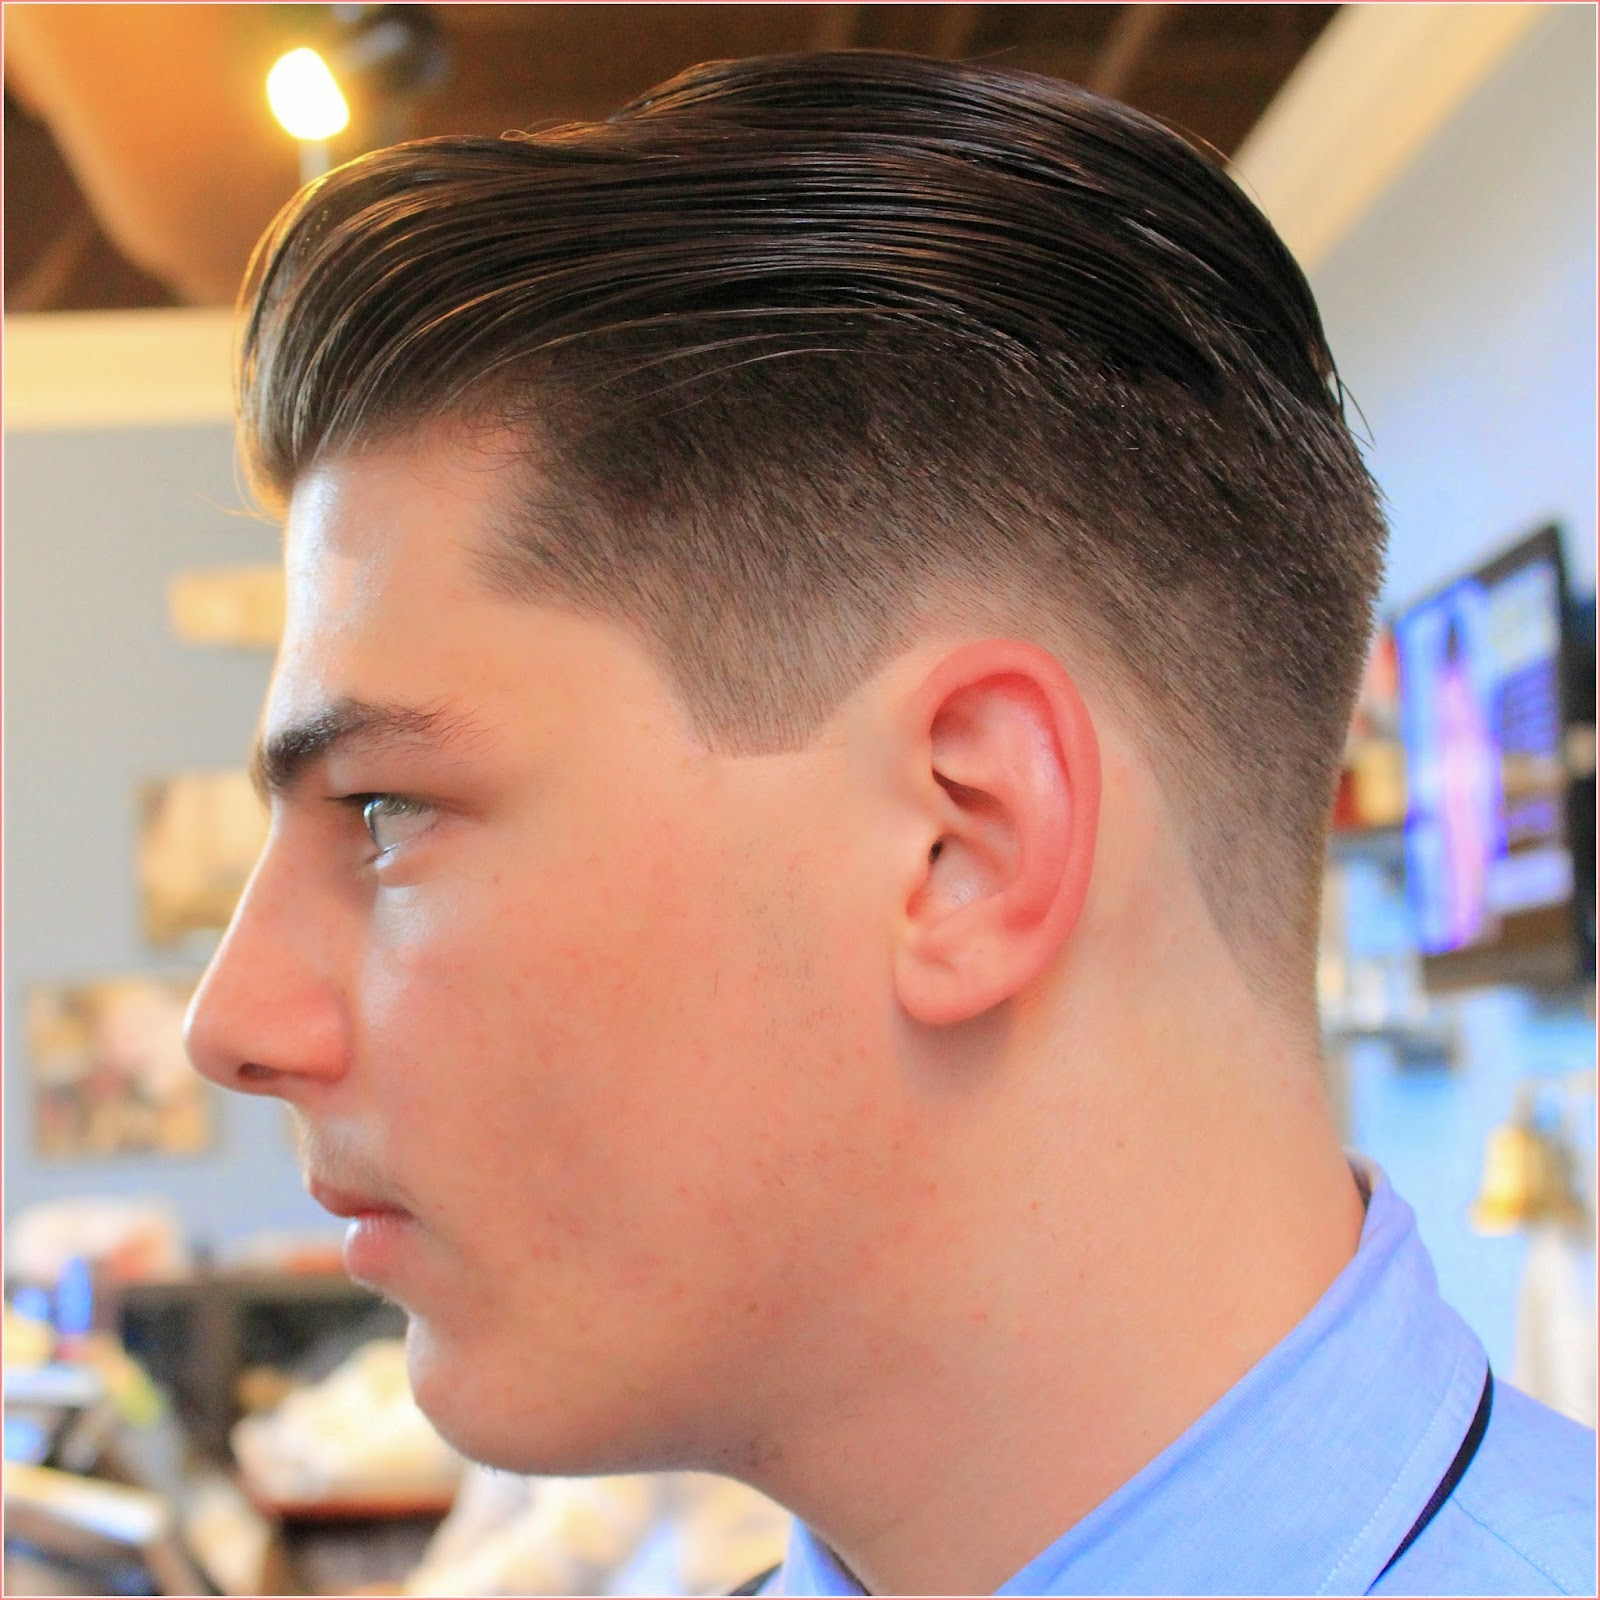 s regular haircut alex unisex hair salon cut amp style for 2192